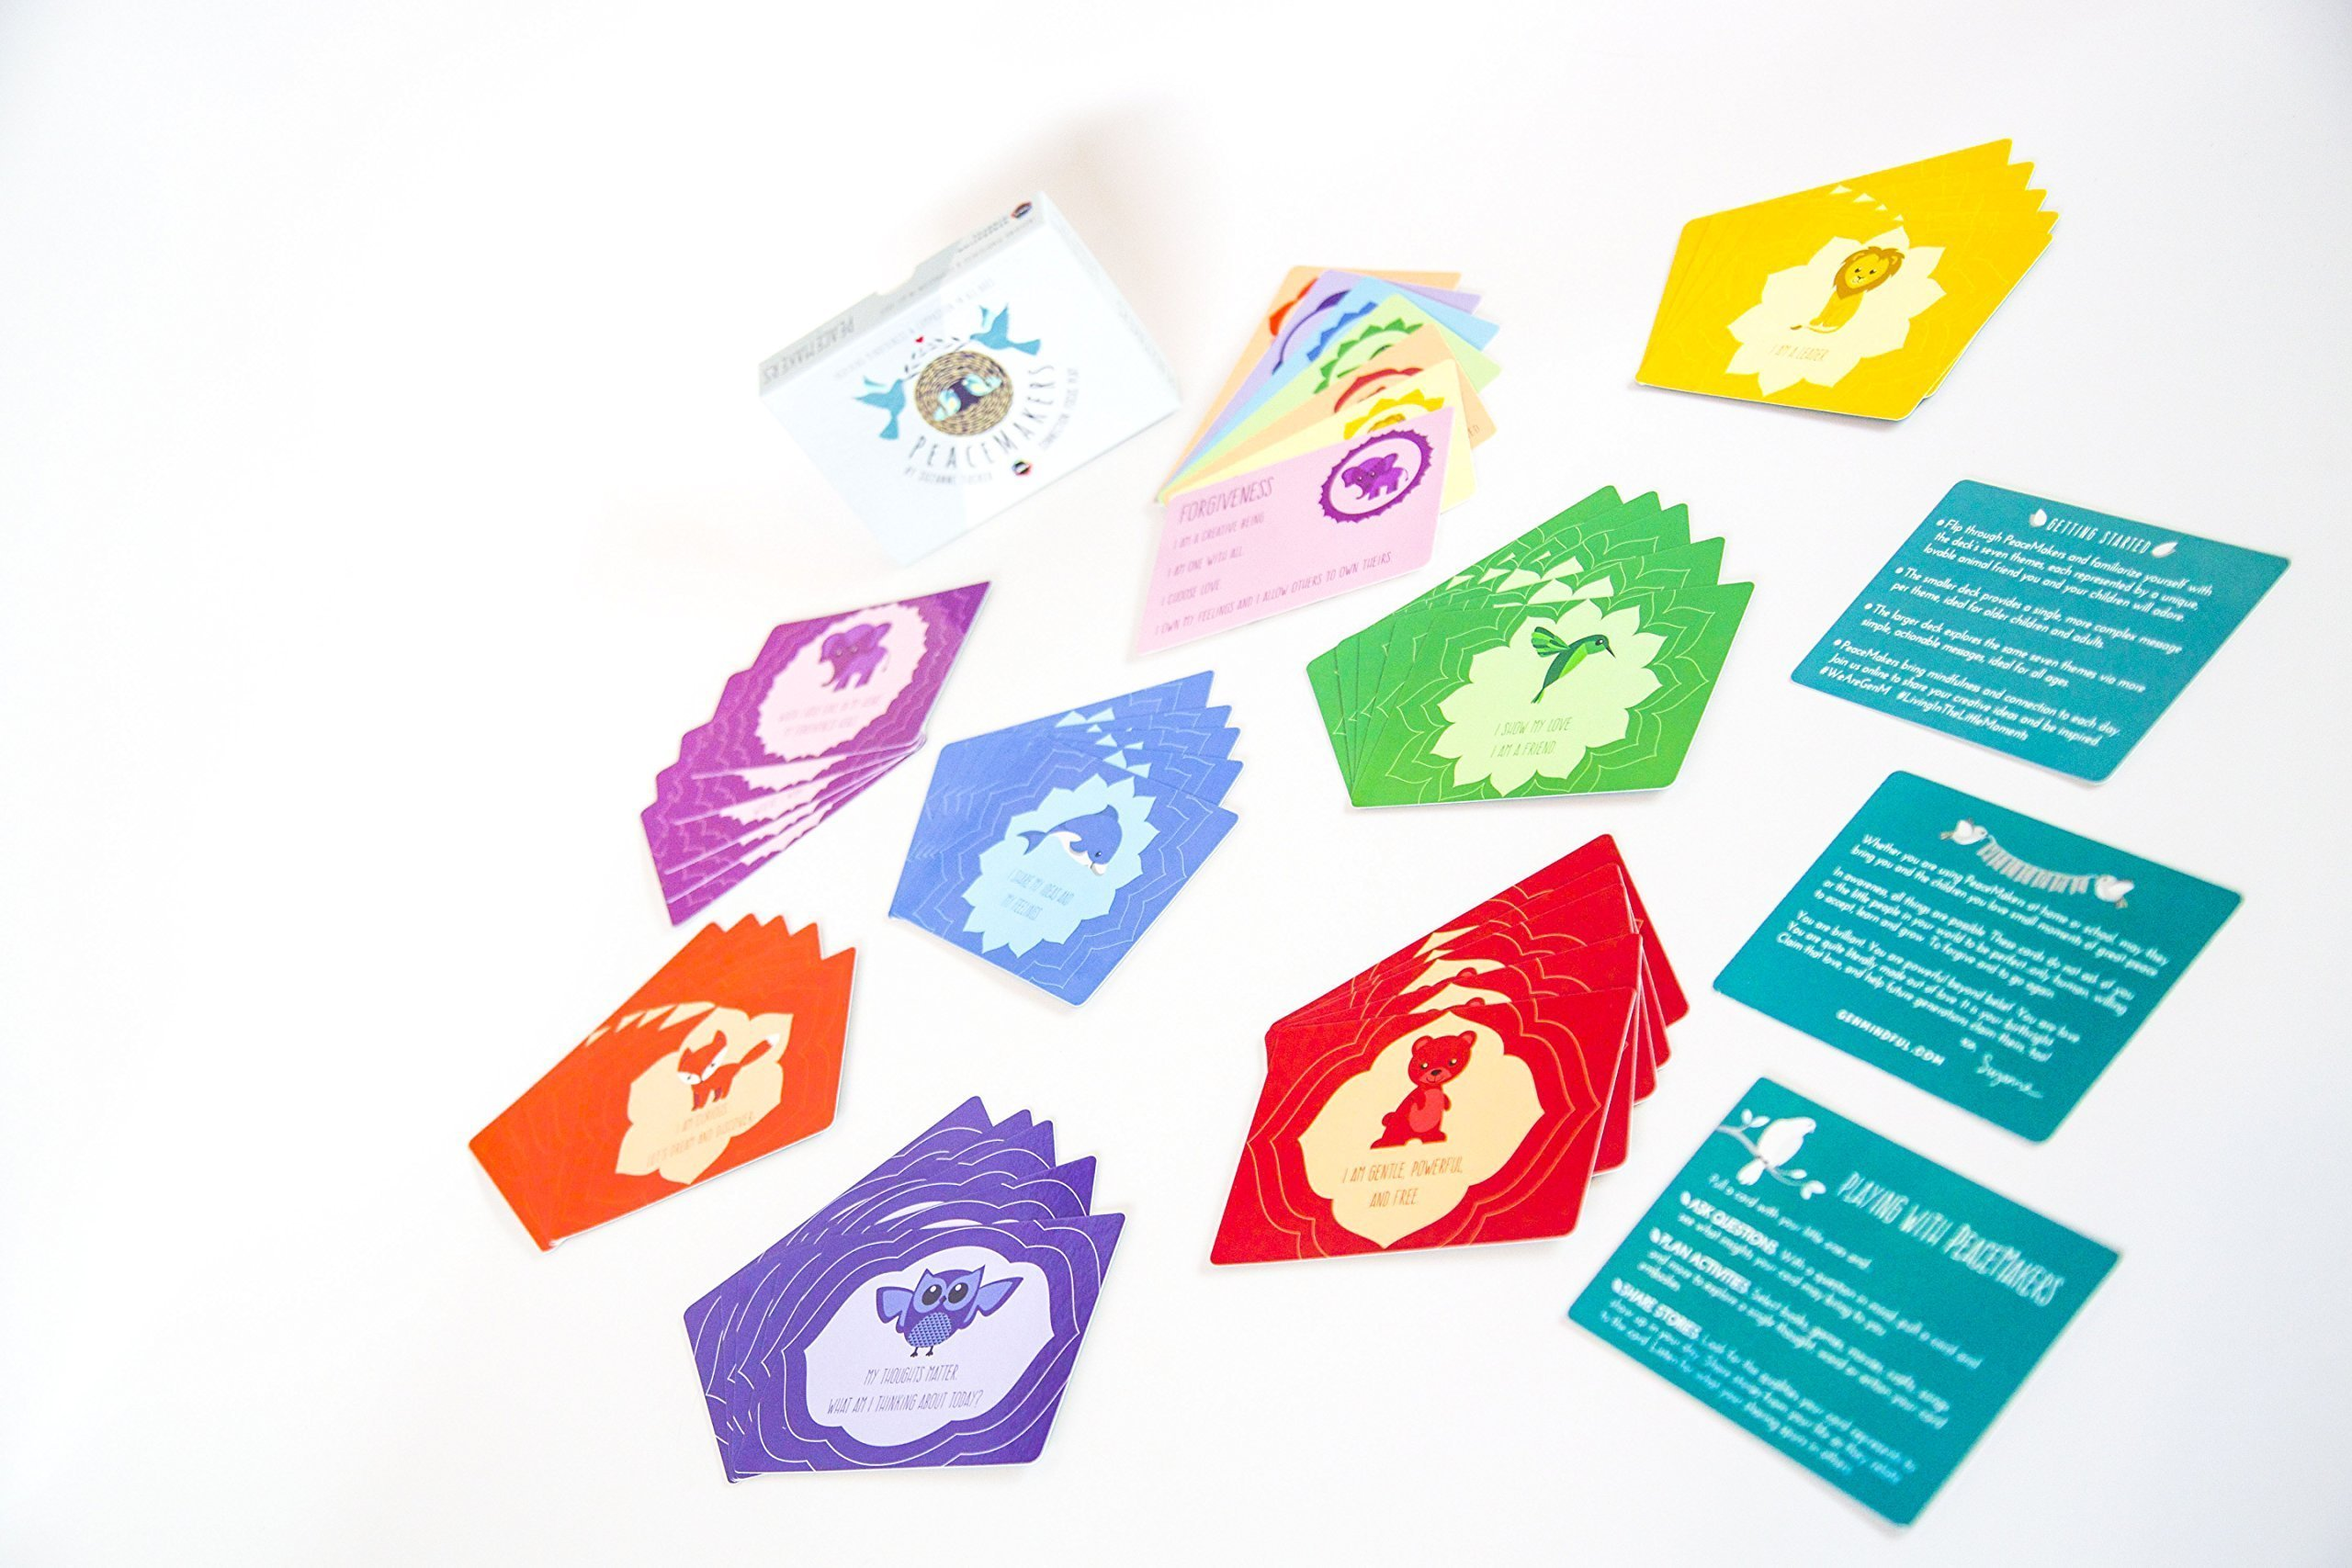 PeaceMakers: A Mindfulness Card Game For Kids That Builds Social Emotional Skills